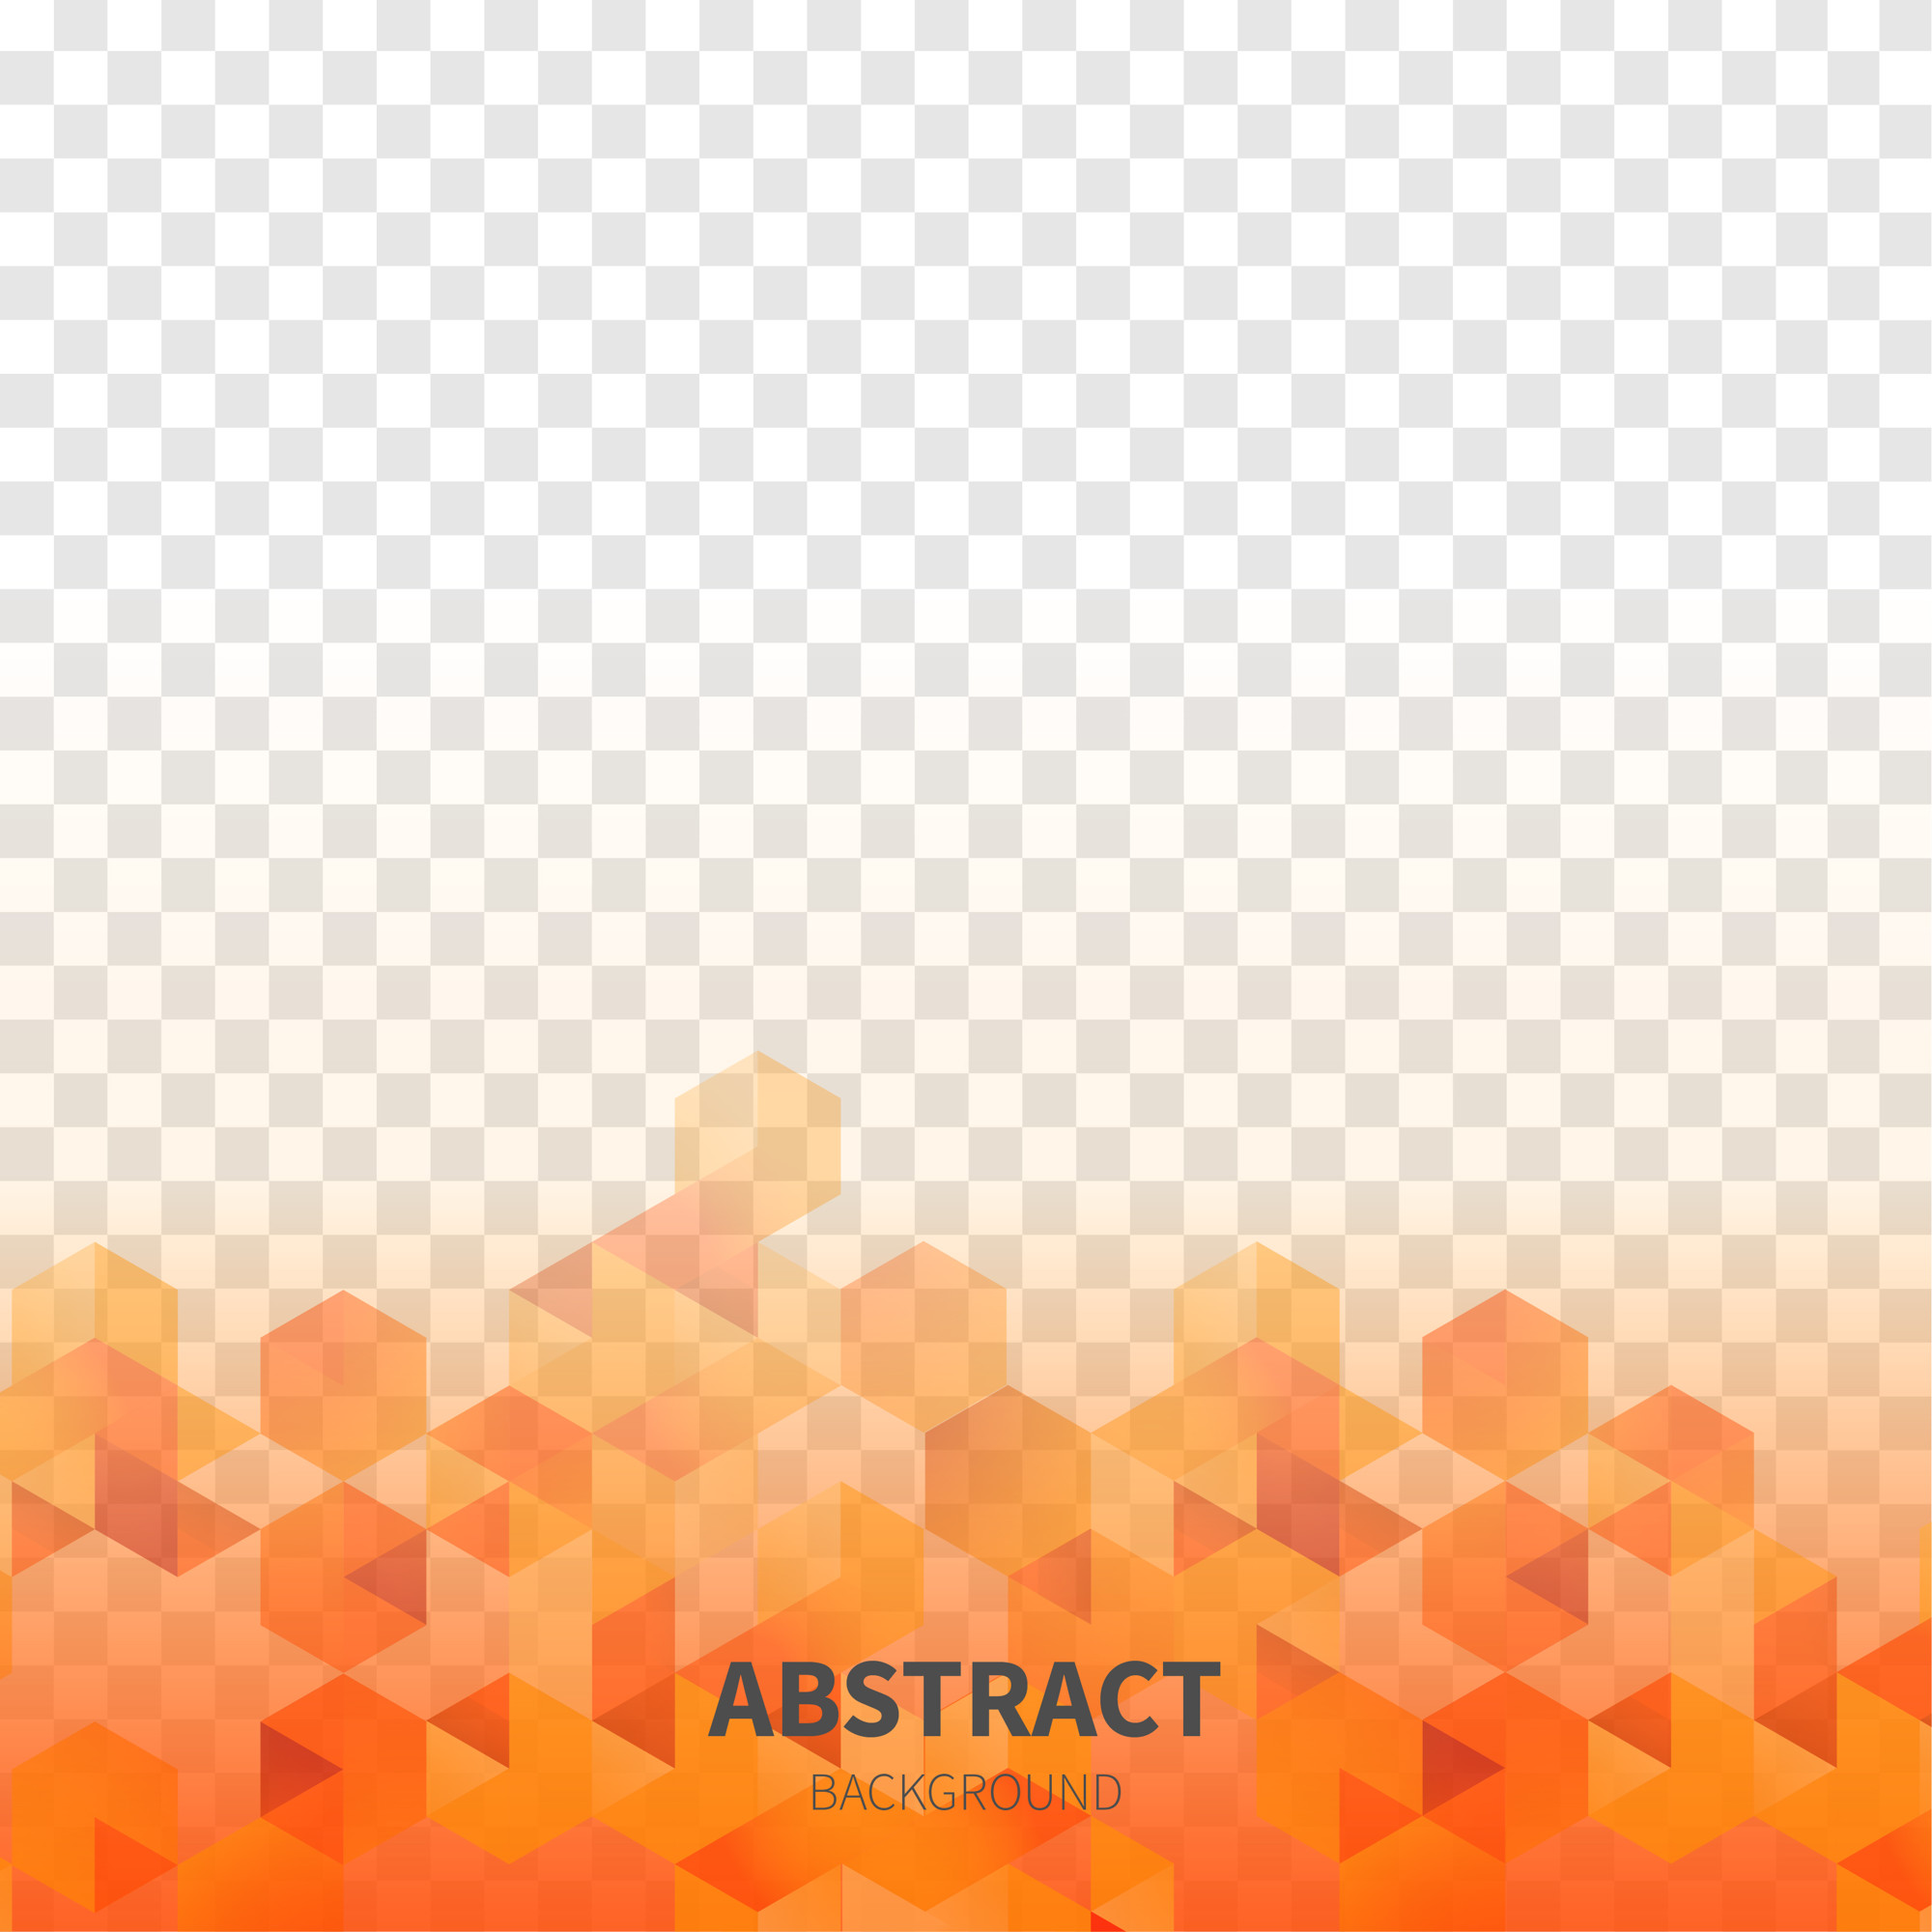 Abstract Shapes with Transparent Background